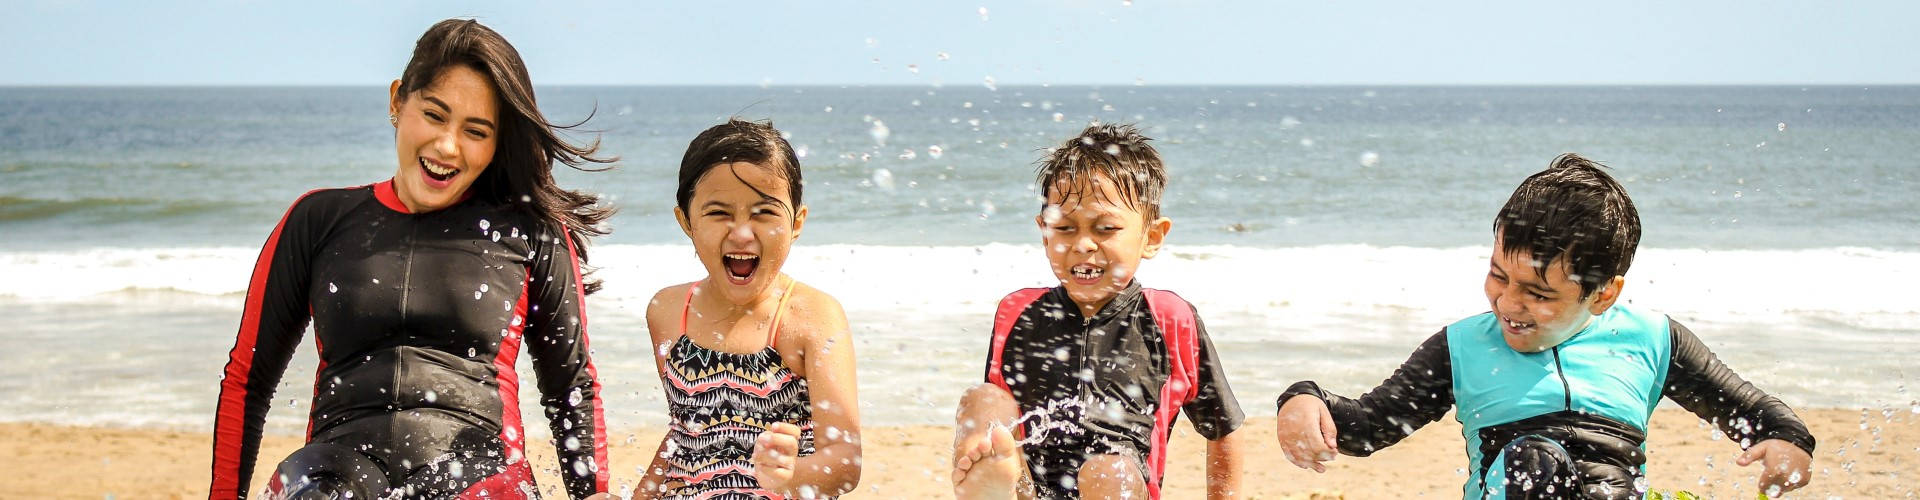 woman-and-three-children-playing-water-1231365